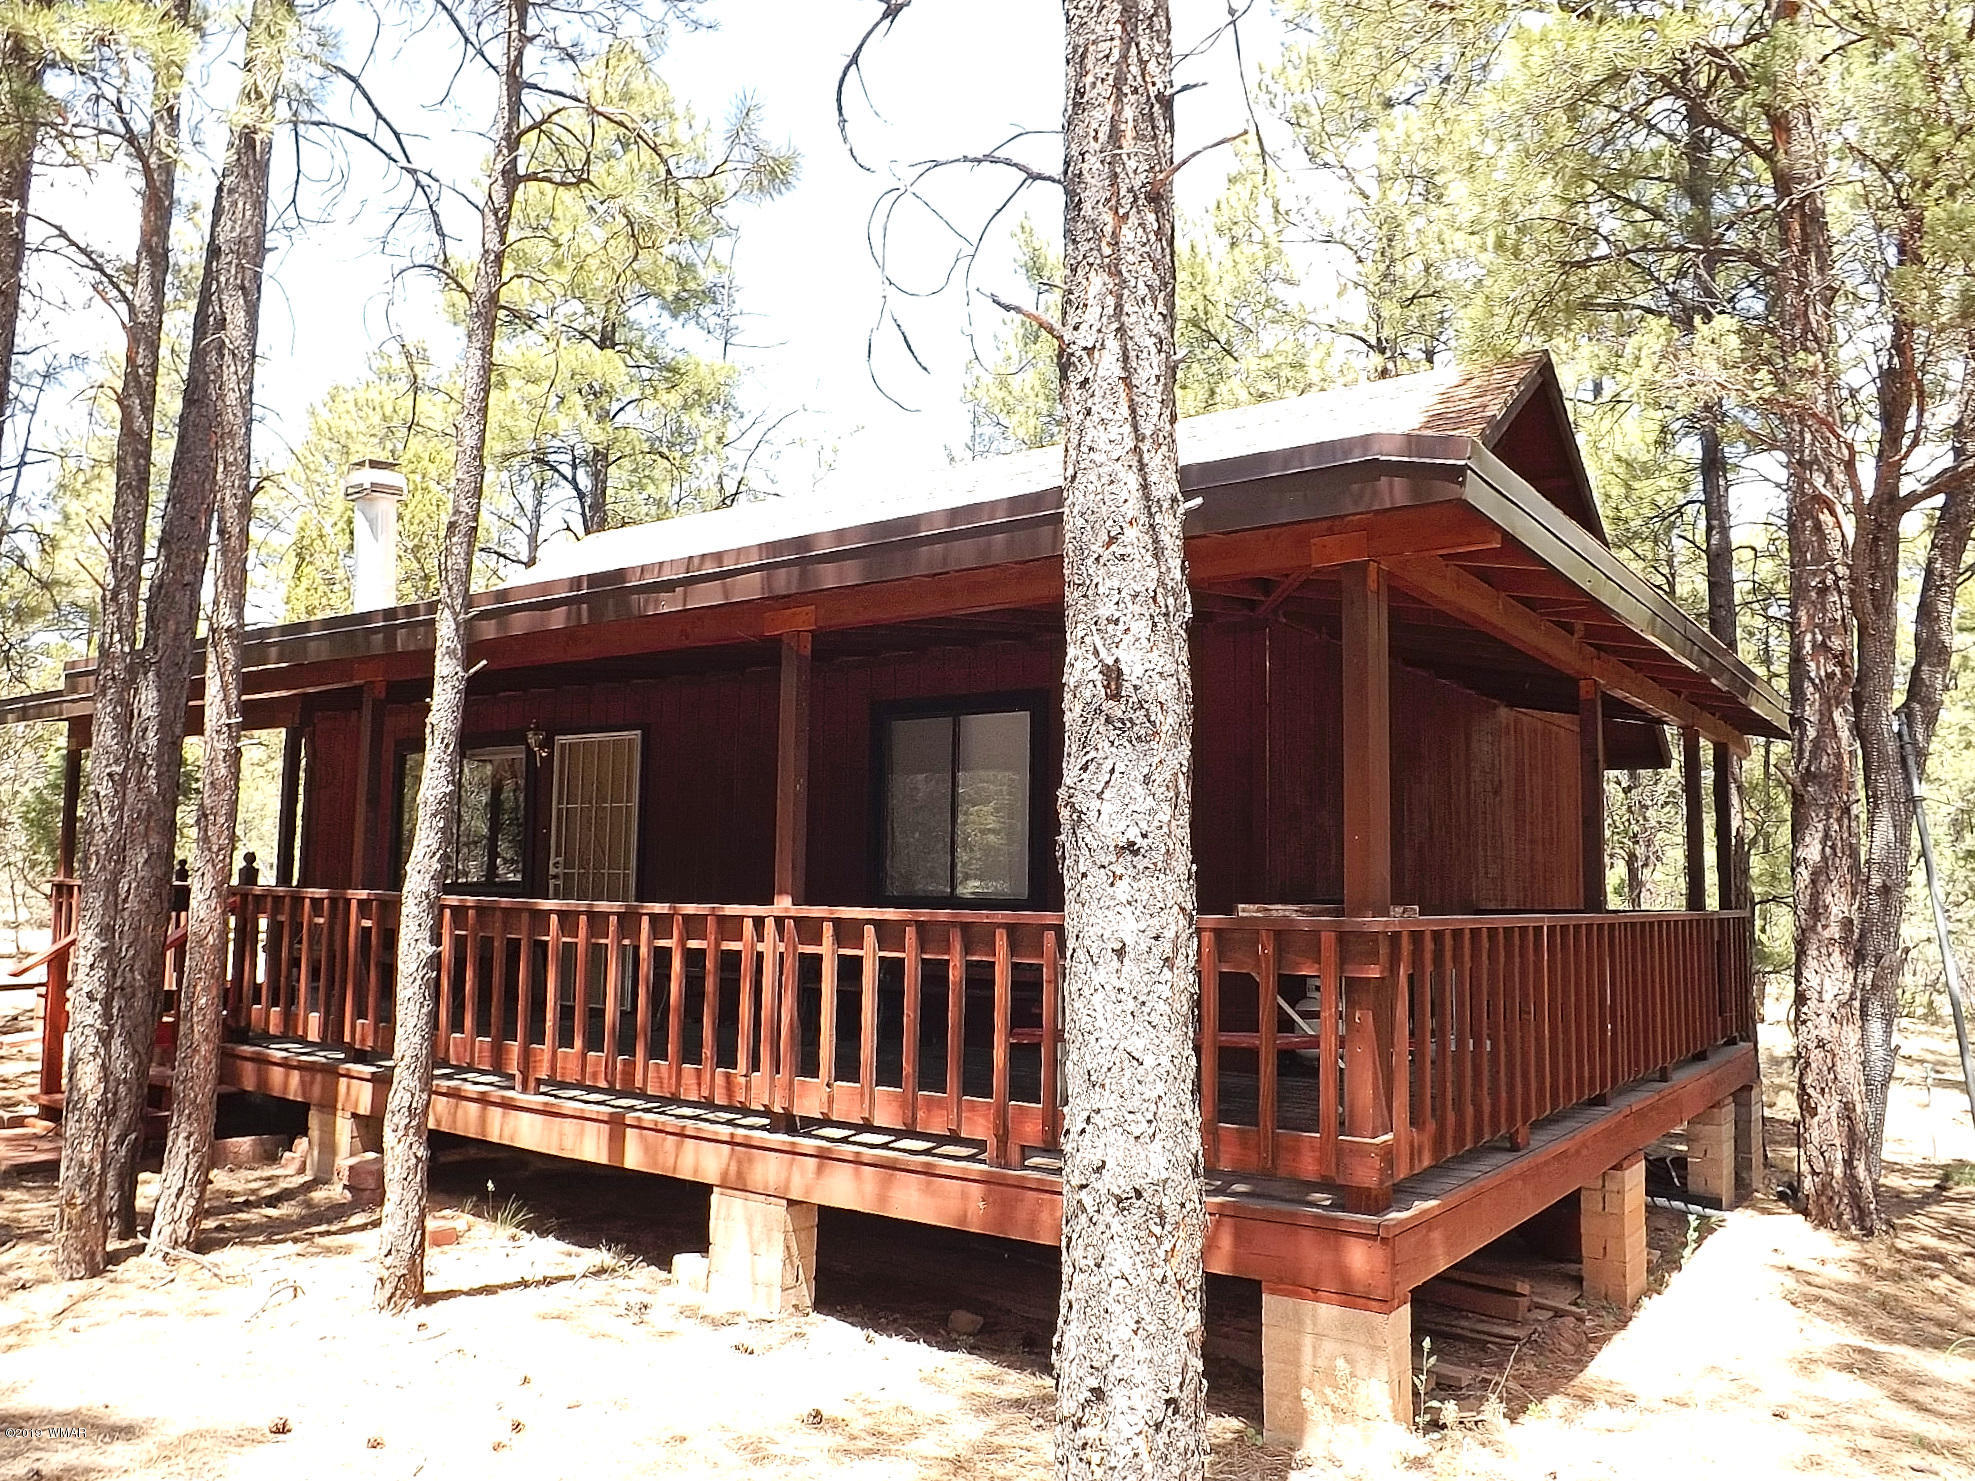 Stunning 3 BR/ 1.5 BA cabin in Overgaard AZ. If privacy, seclusion, lots of pines and wildlife is what you desire then here it is. This cabin is nestled on 3.10 acres of heavily forested land. This cabin features a great room design, with a stone faced fireplace, ceiling fans, a cozy kitchen, nice sized bedrooms. a loft area, knotty pine T&G ceilings,  beautiful wood finishes throughout, baseboard heating, carpet and laminate flooring and exposed wood beams. The exterior offers a full length covered front deck and a utility building. This is a must see.